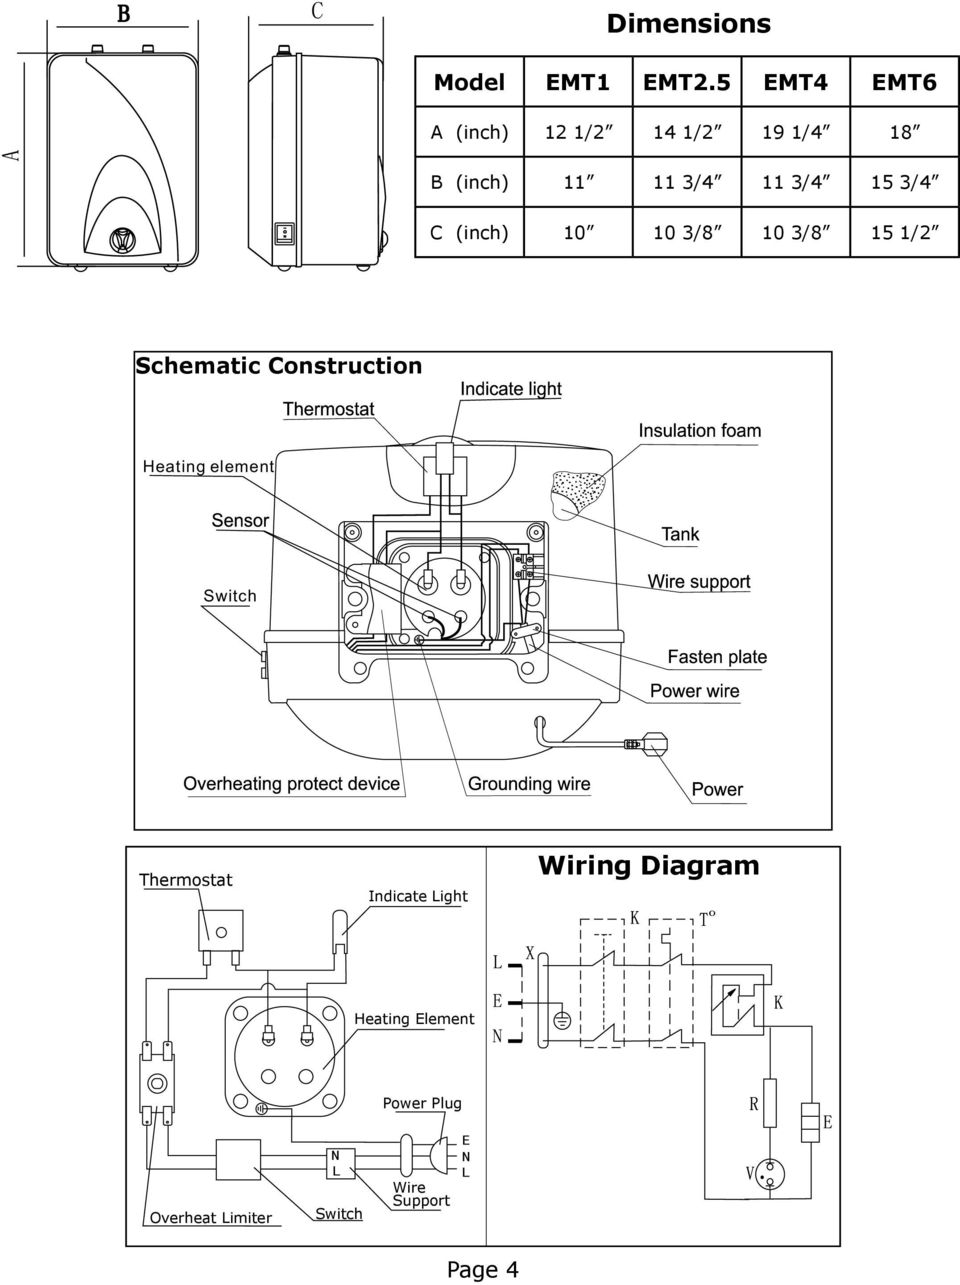 3/4 C (inch) 10 10 3/8 10 3/8 15 1/2 Schematic Construction Heating